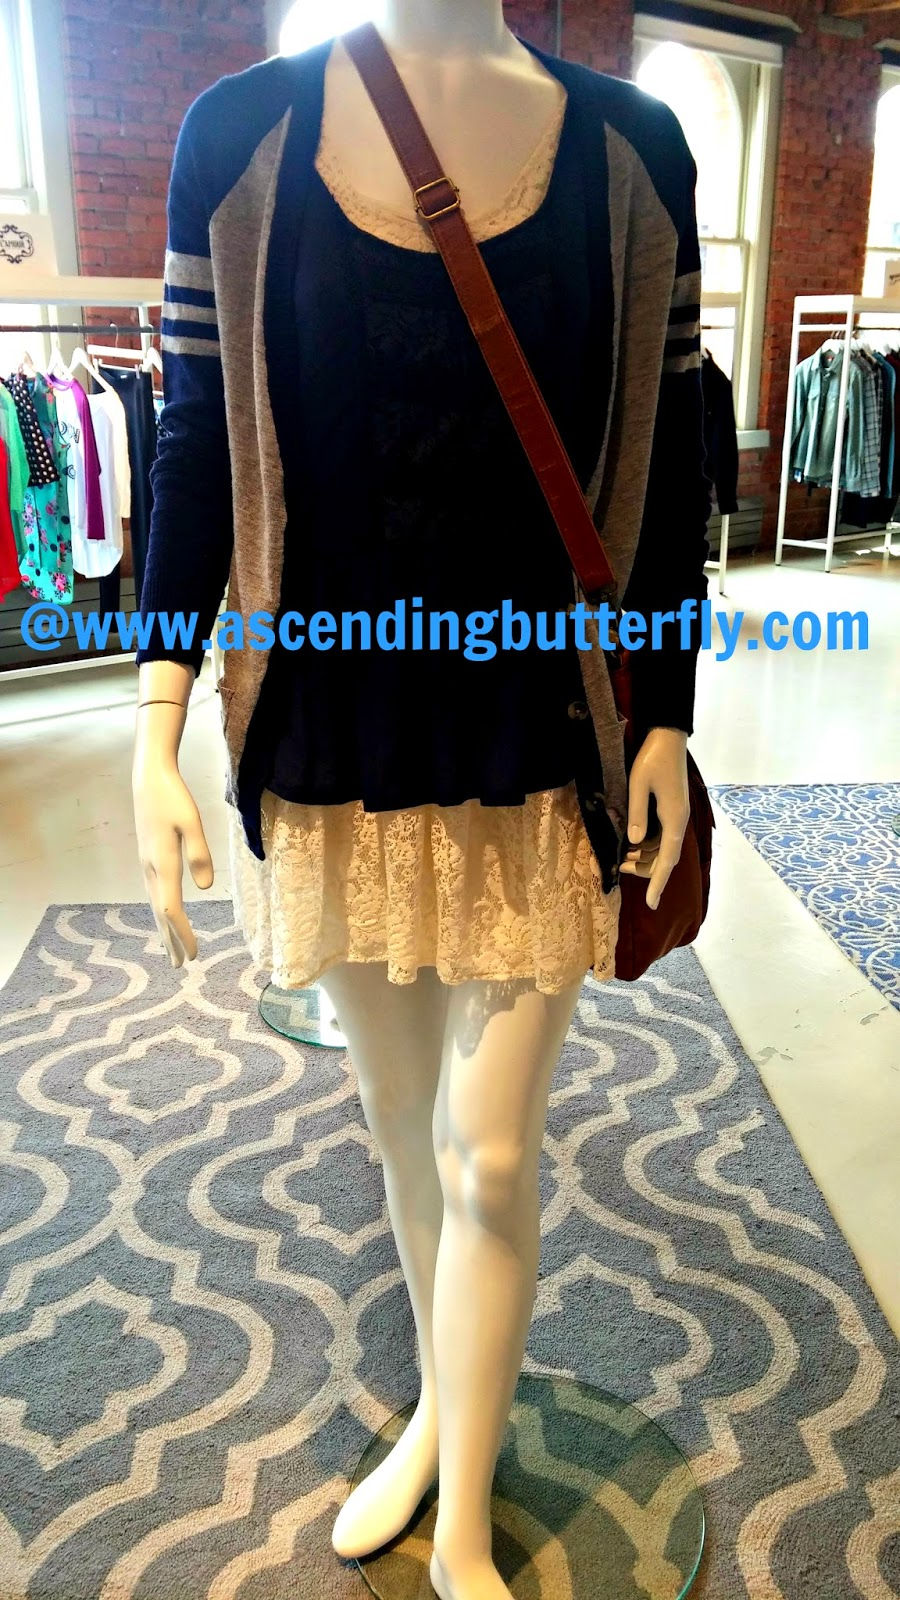 Frilly skirt/Sporty Jacket Combo, fashion for teen girls